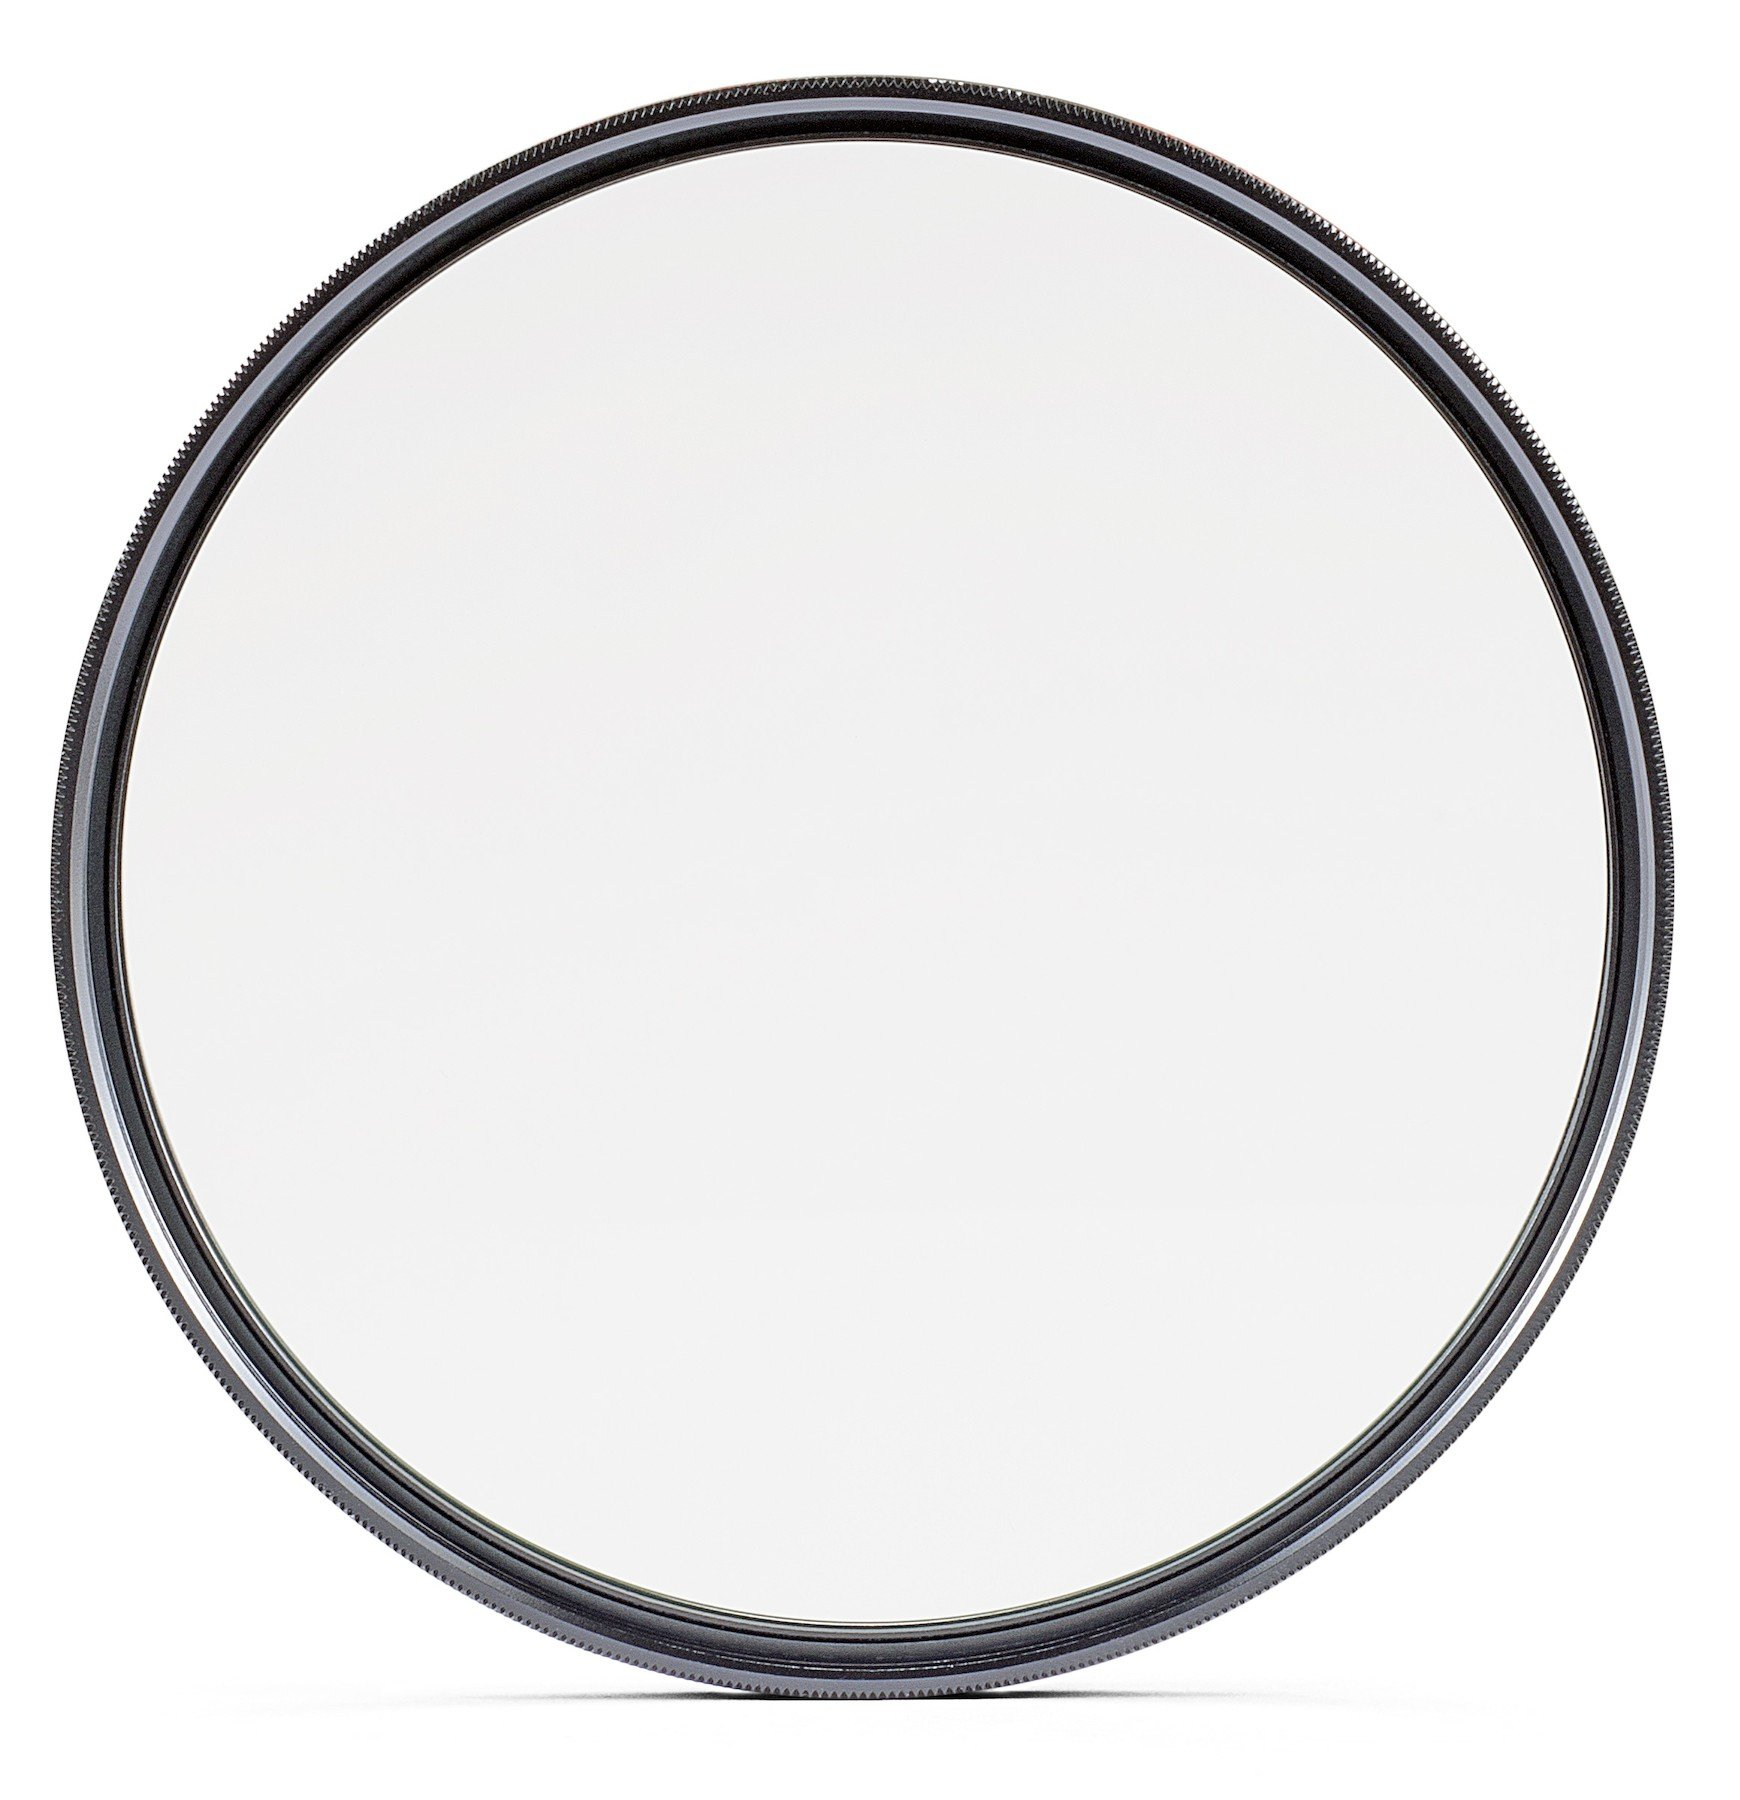 82mm Professional Protect Filter